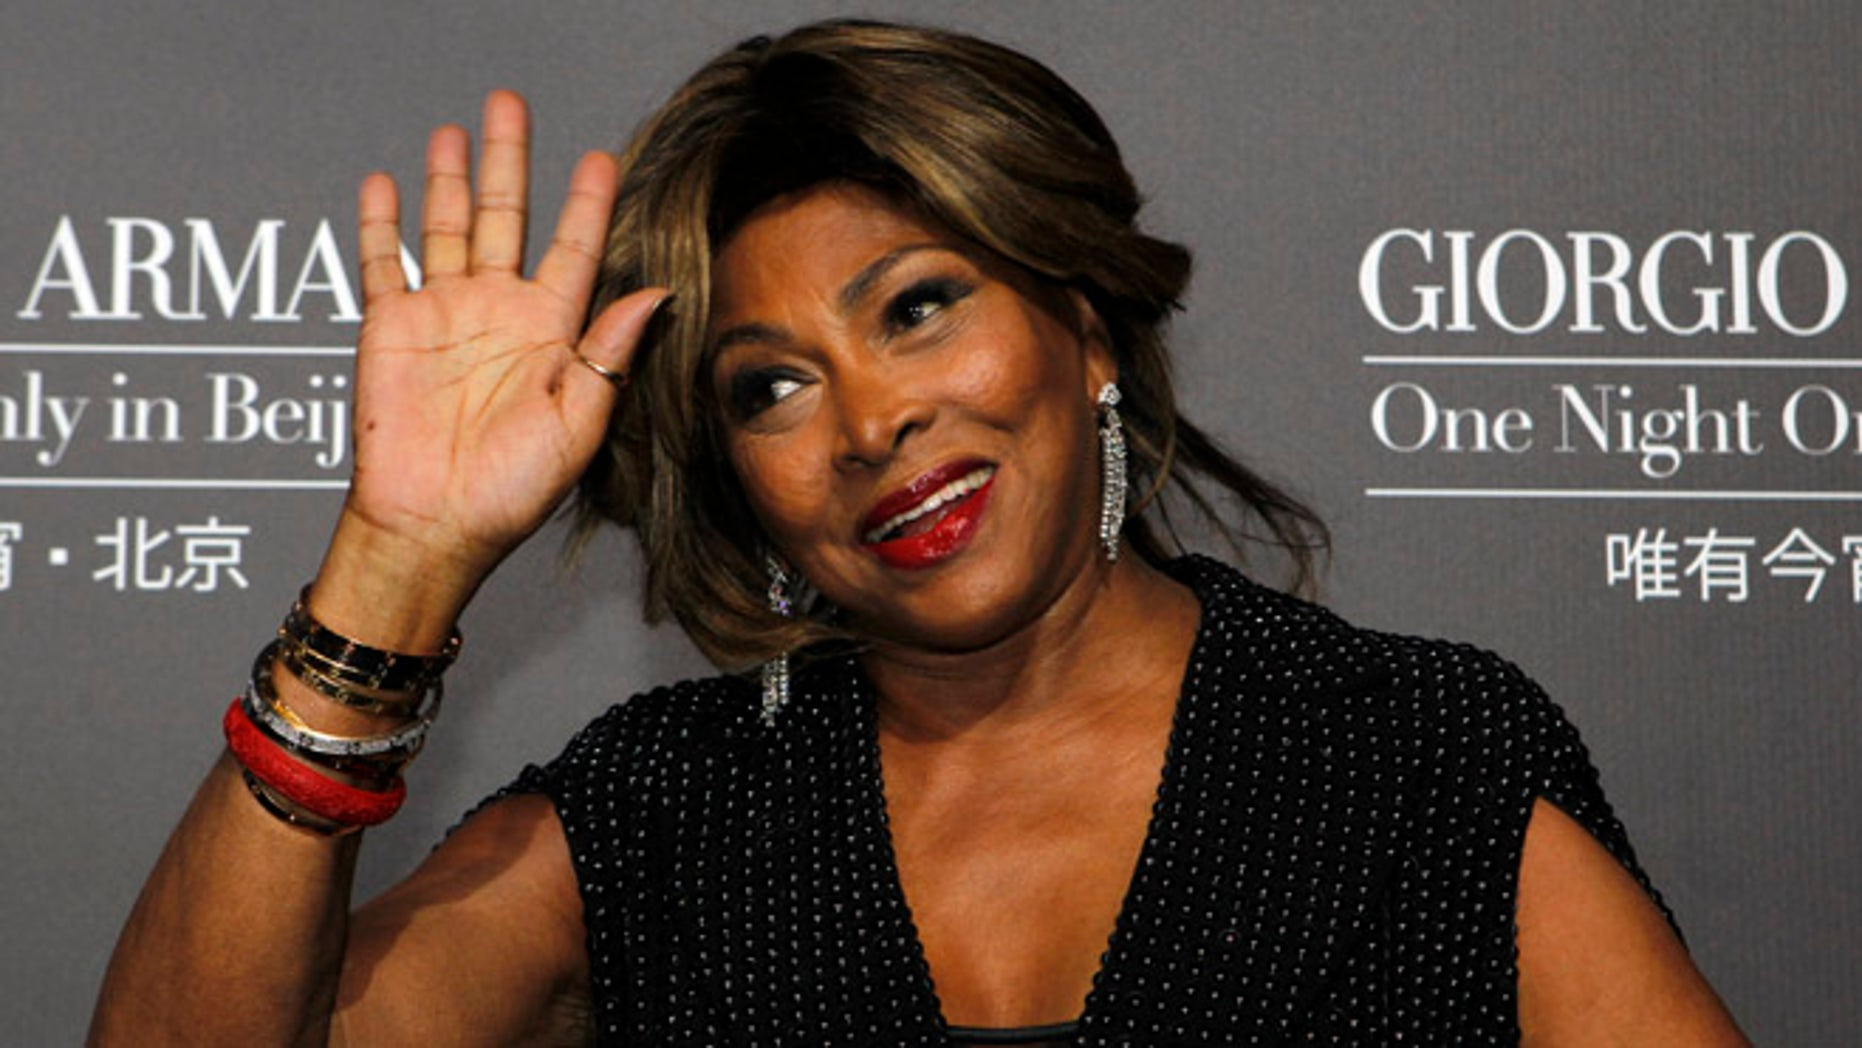 May 31, 2012: This file photo shows U.S. singer actress Tina Turner arriving for the Giorgio Armani fashion show held in Beijing.